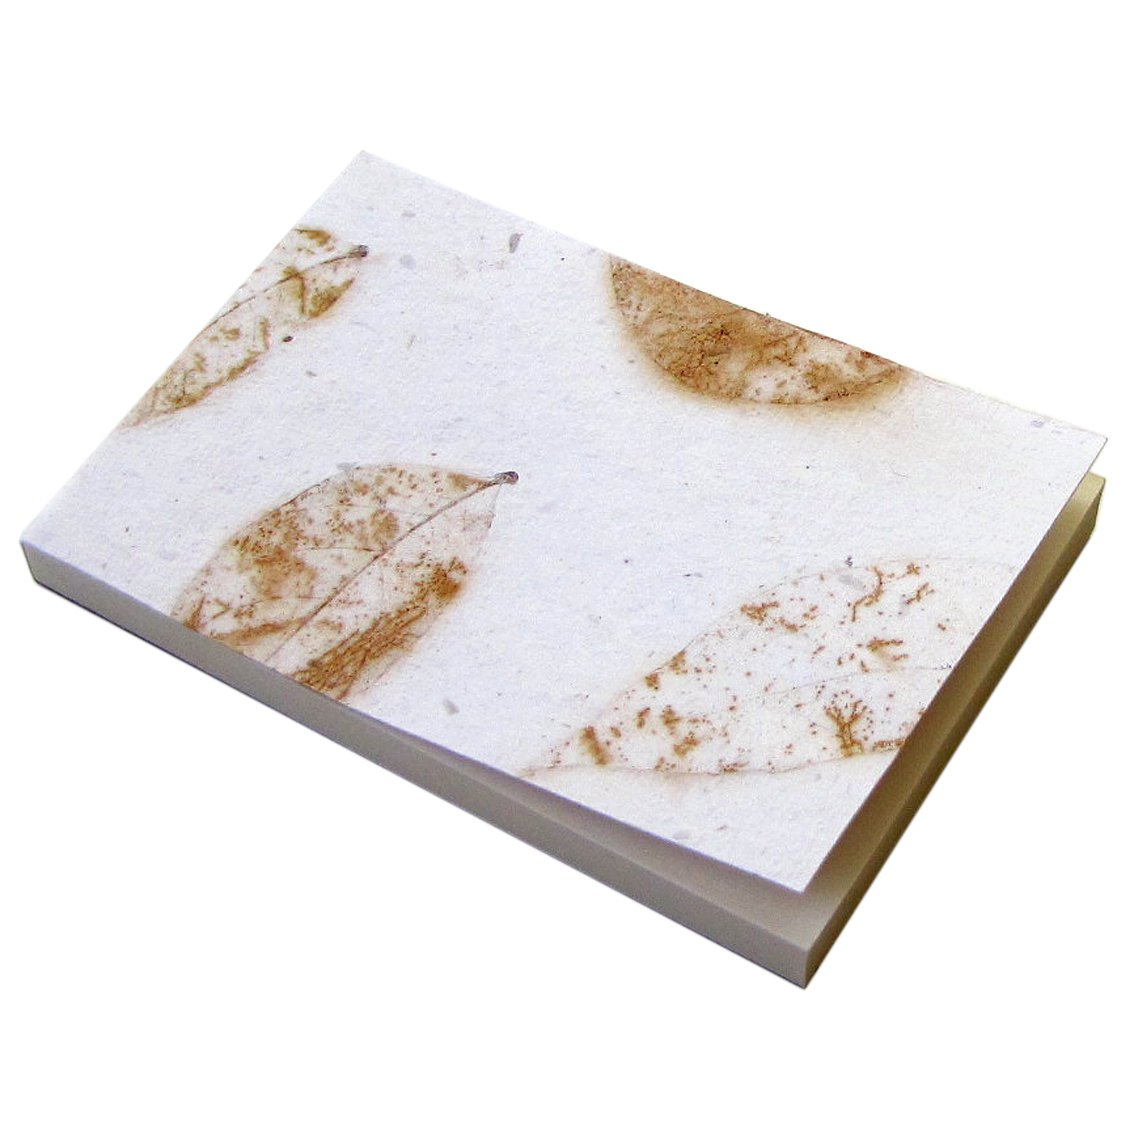 Memo pad note block stationery handmade recycled paper white natural leaf 3x5in 100 peel off pages